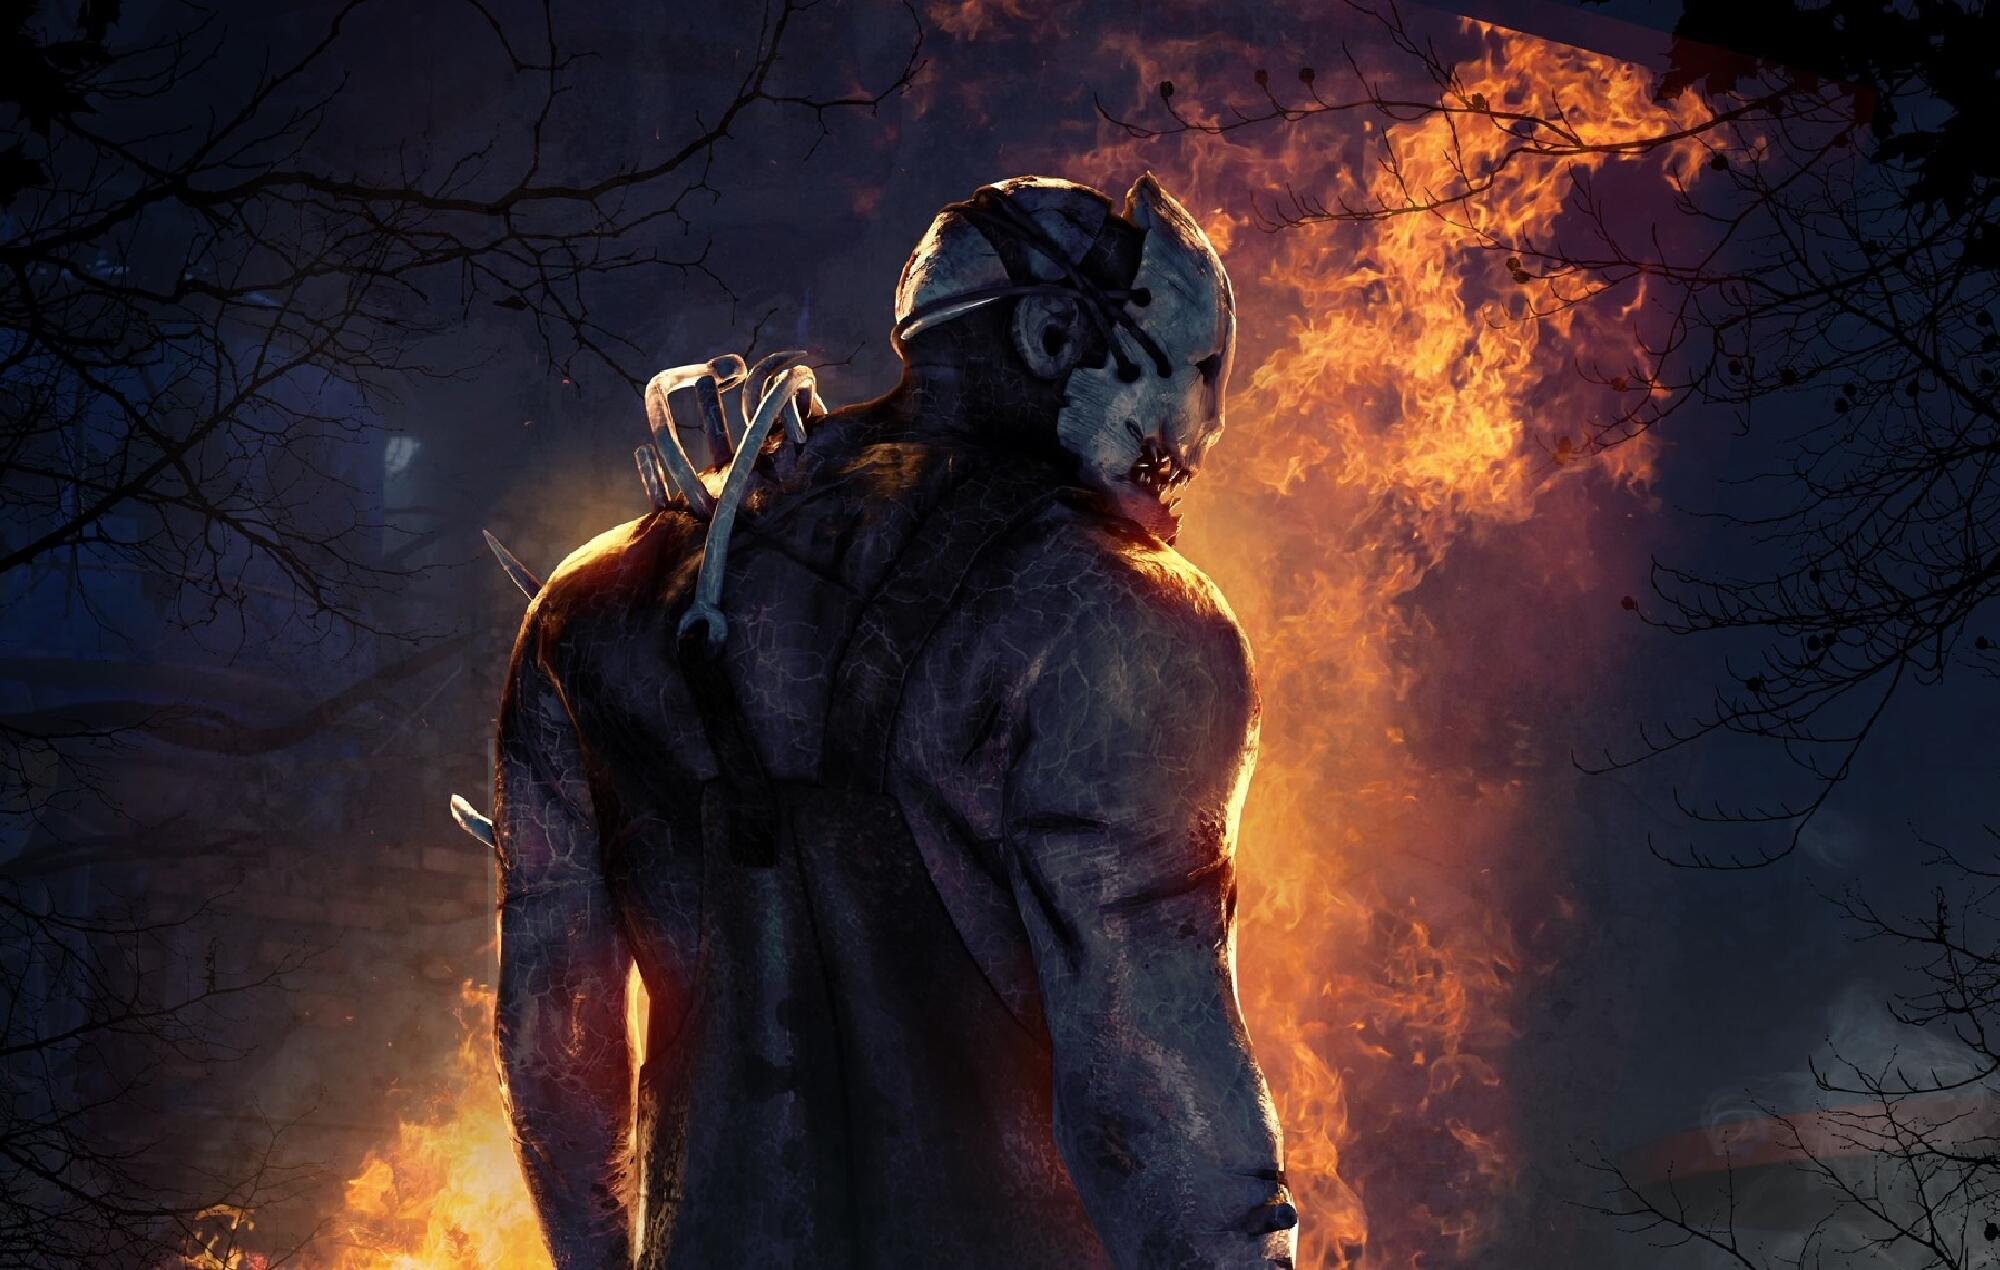 dead-by-daylight-credit-behaviour-interactive2000x1270